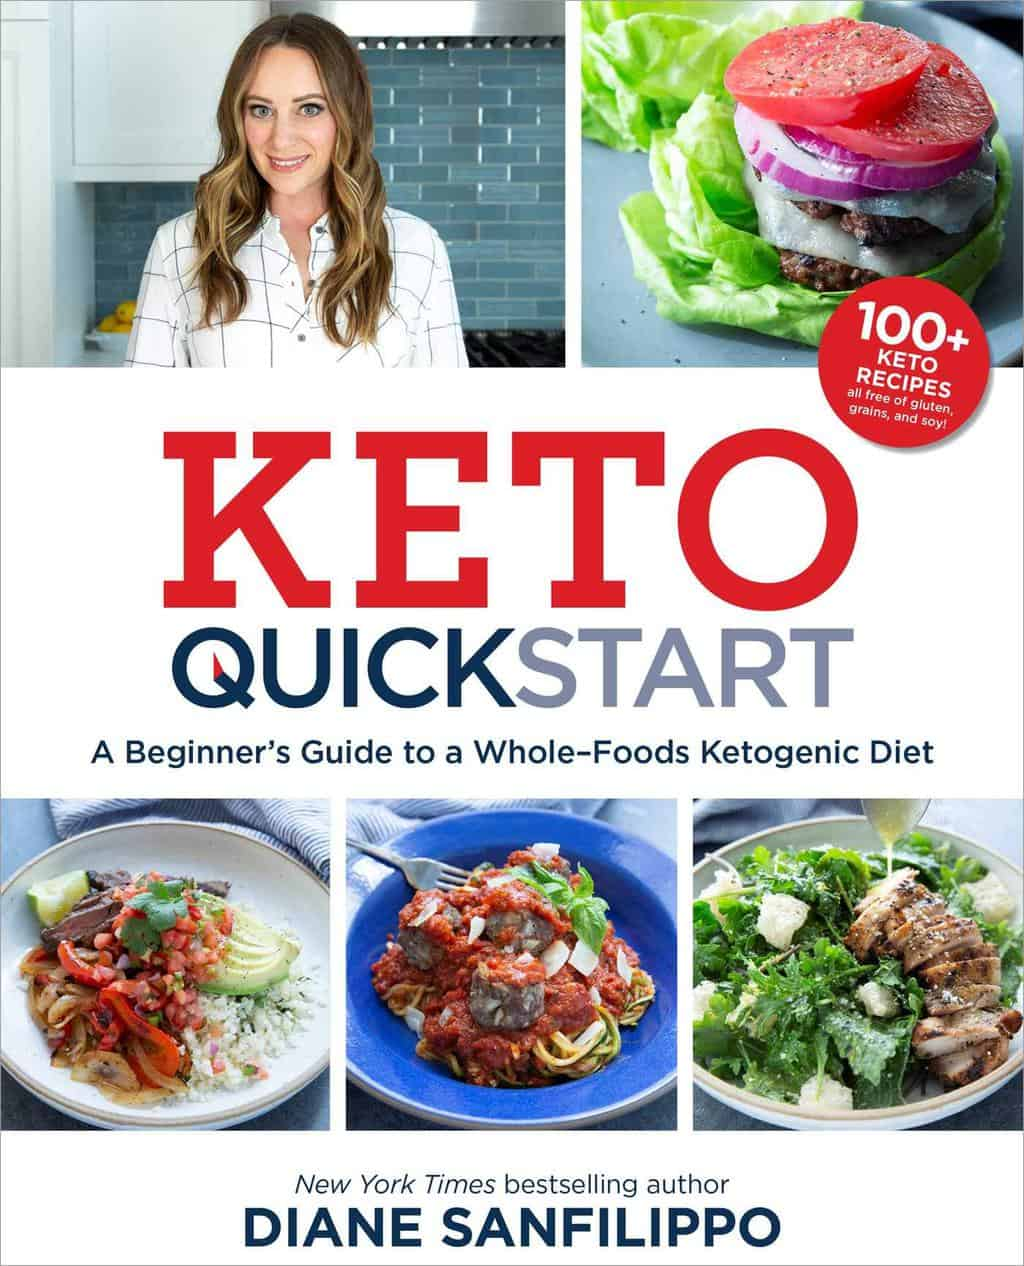 Keto Quick Start Book Review